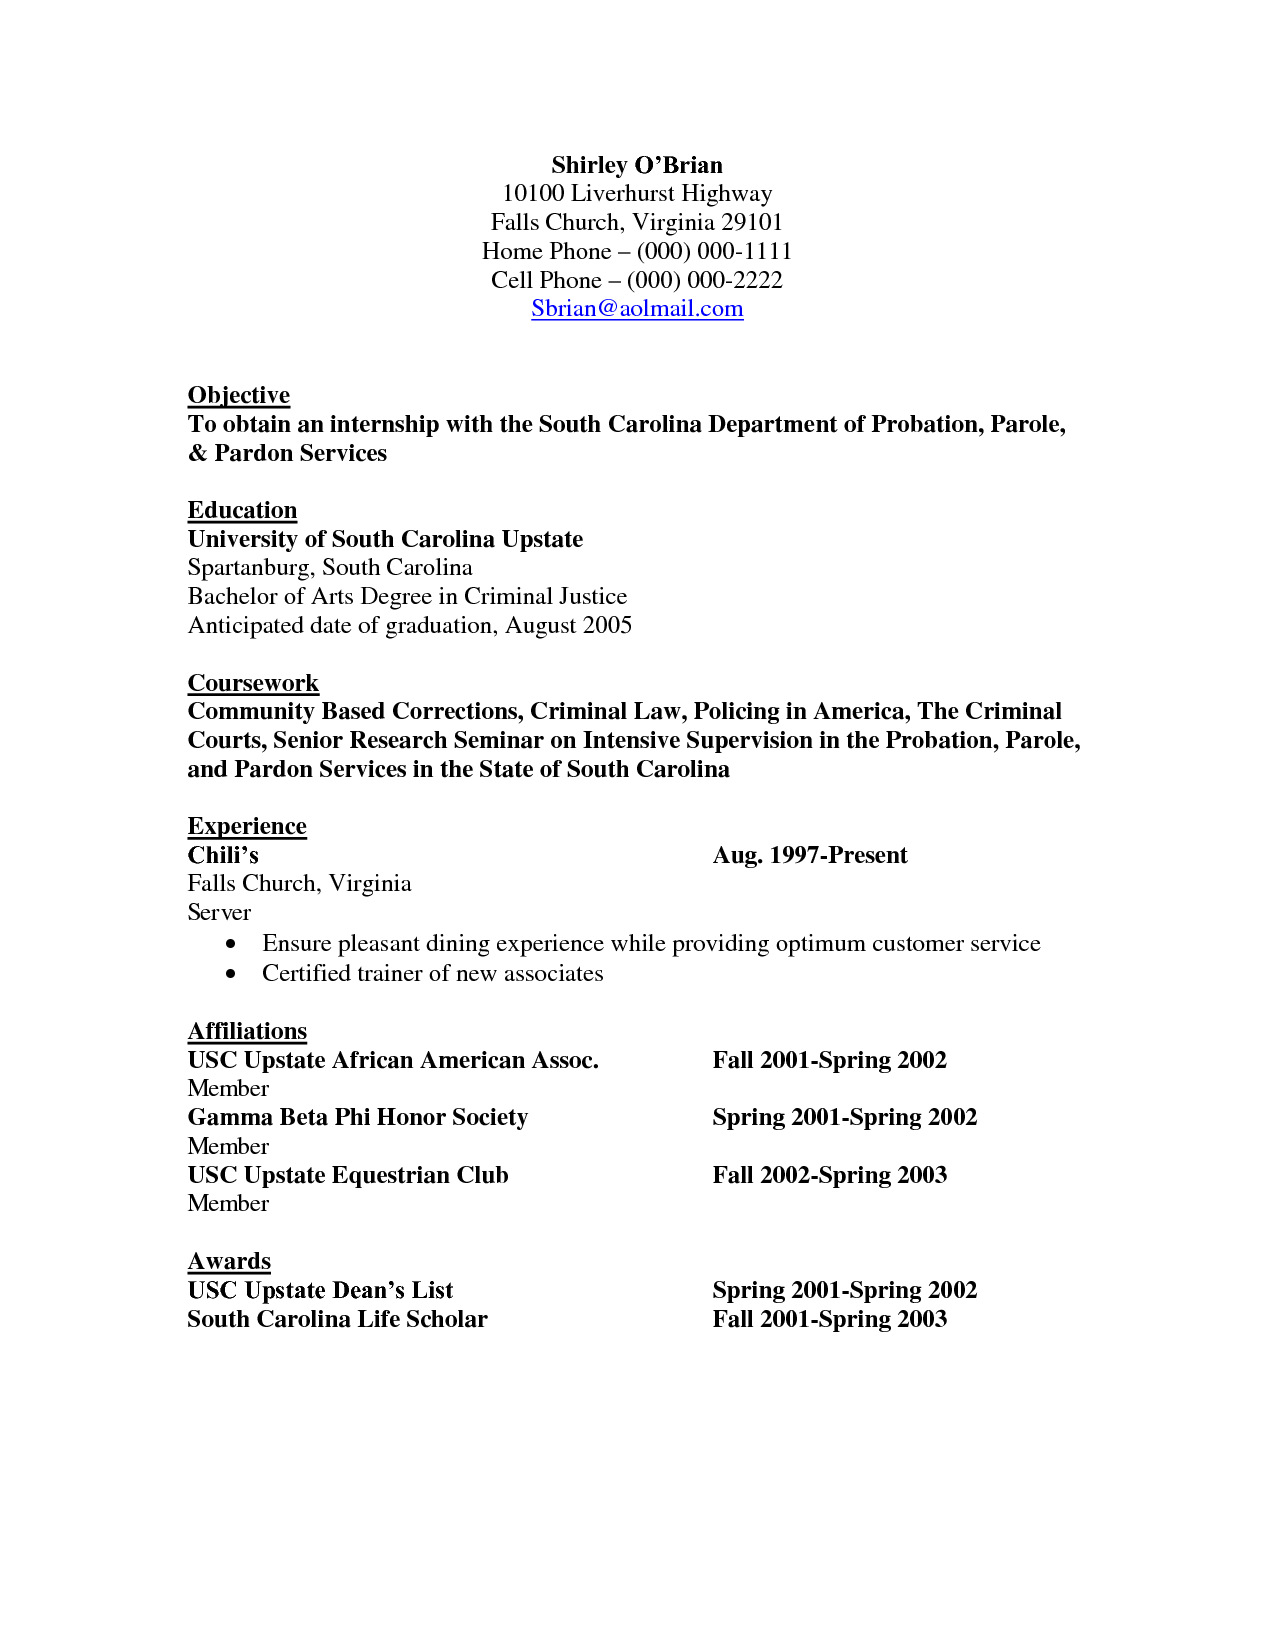 Objective Of A Resume Objective Resume Criminal Justice  Httpwwwresumecareer